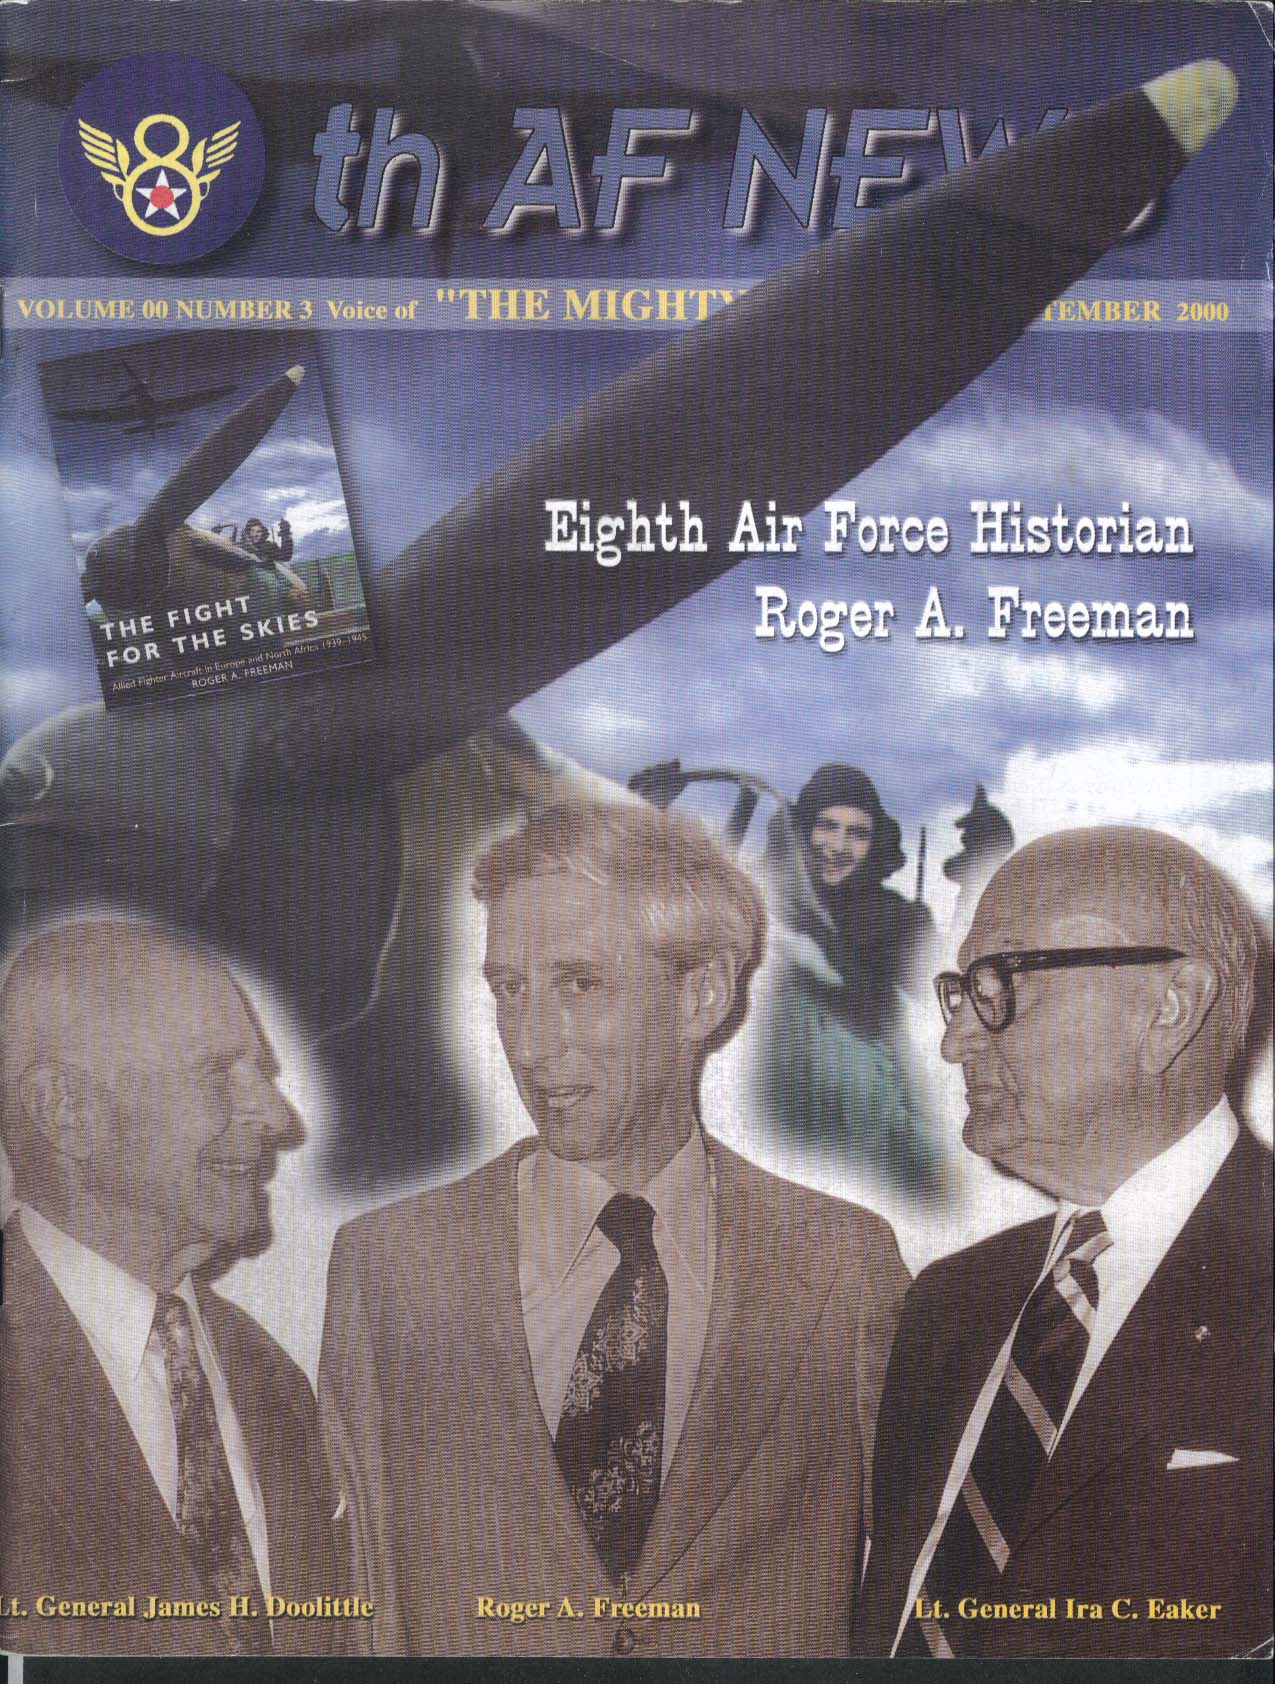 8th AF NEWS Historian Roger A Freeman 9 2000